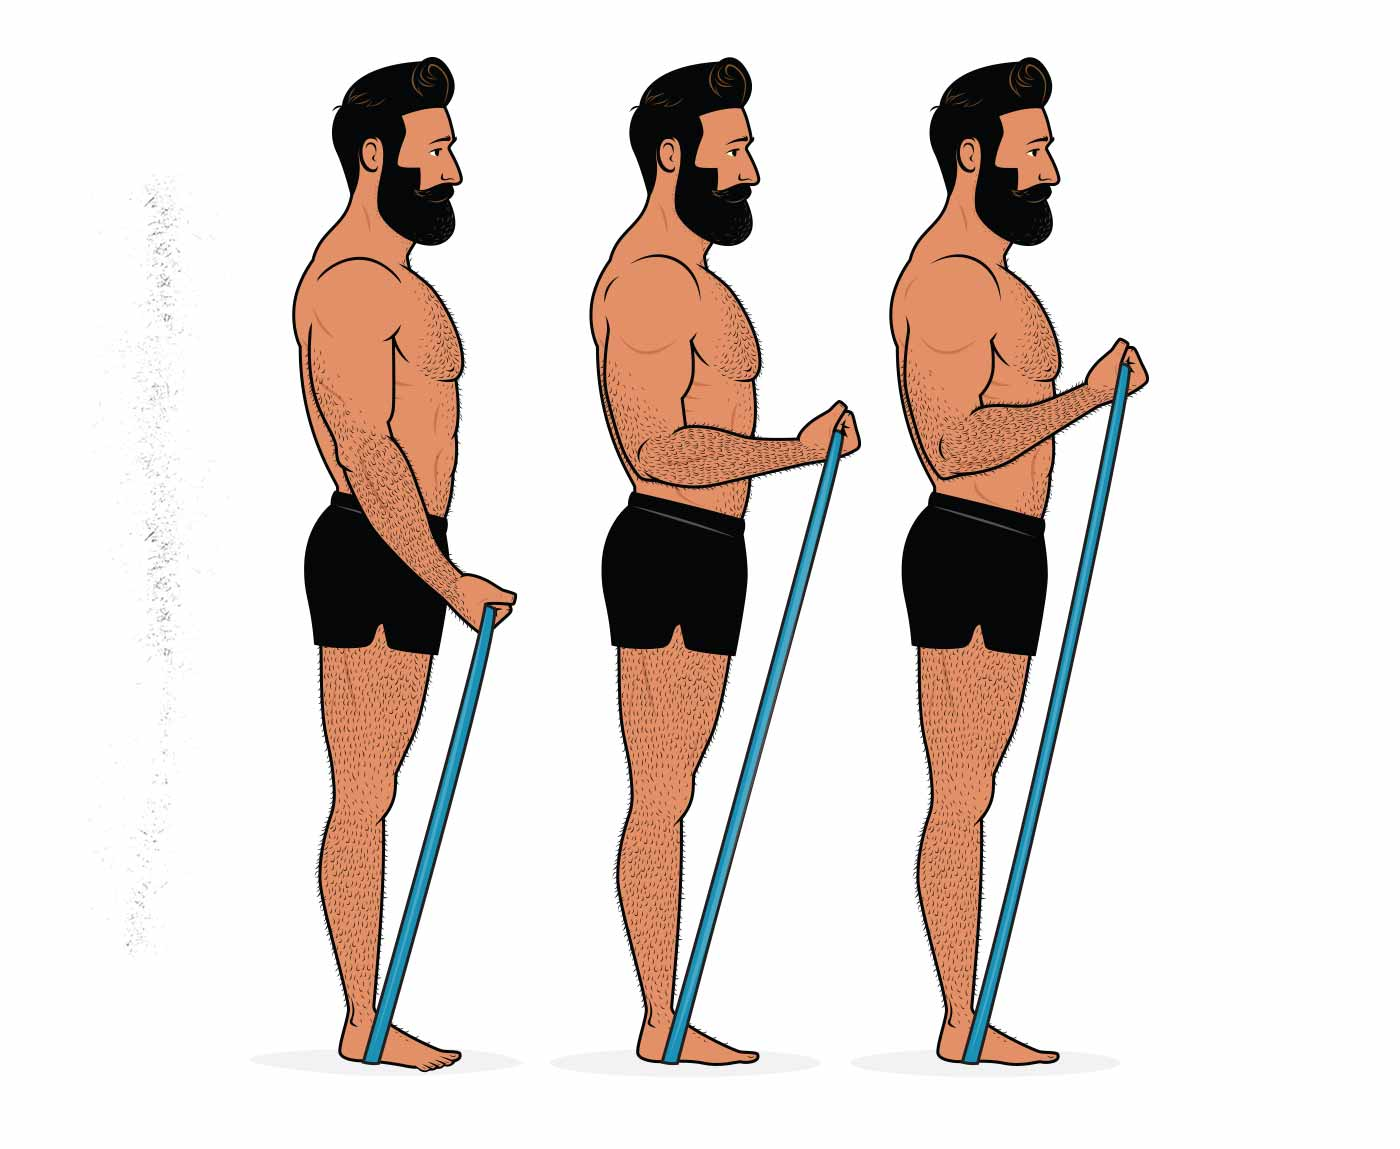 Illustration of a man doing biceps curls with resistance bands.